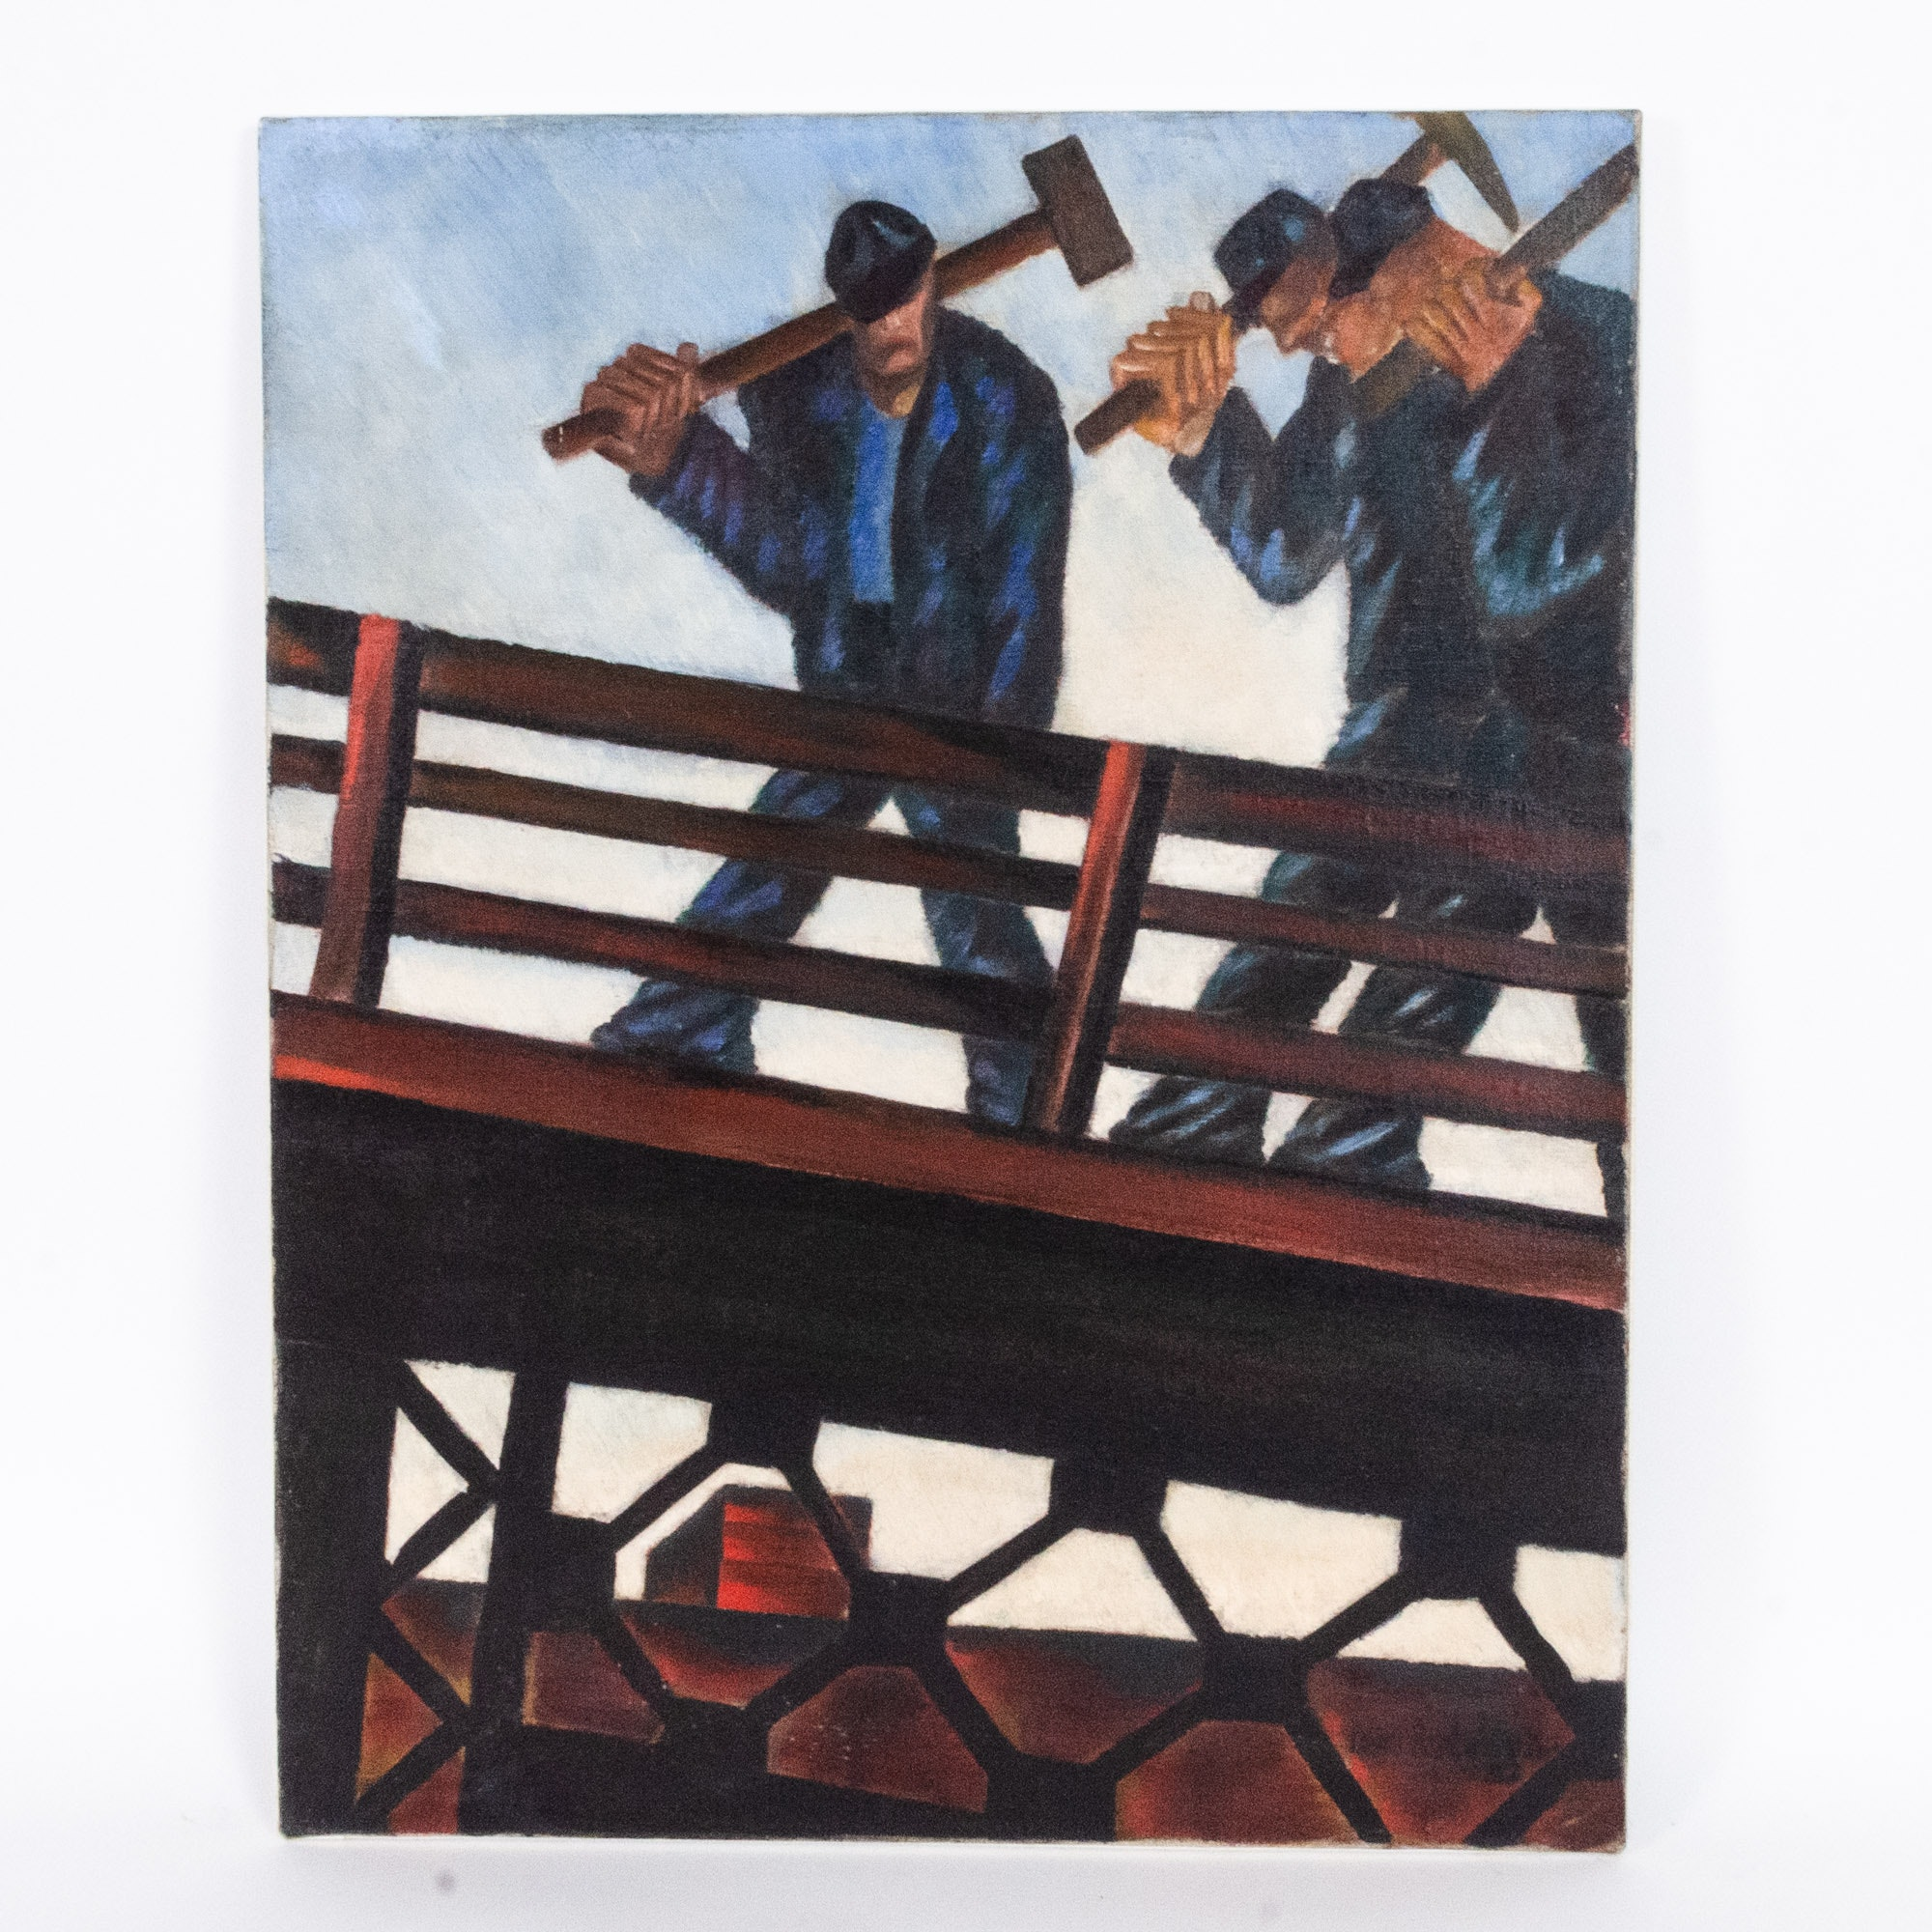 Savo Radulovich Oil Painting, Blue Collar Laborers